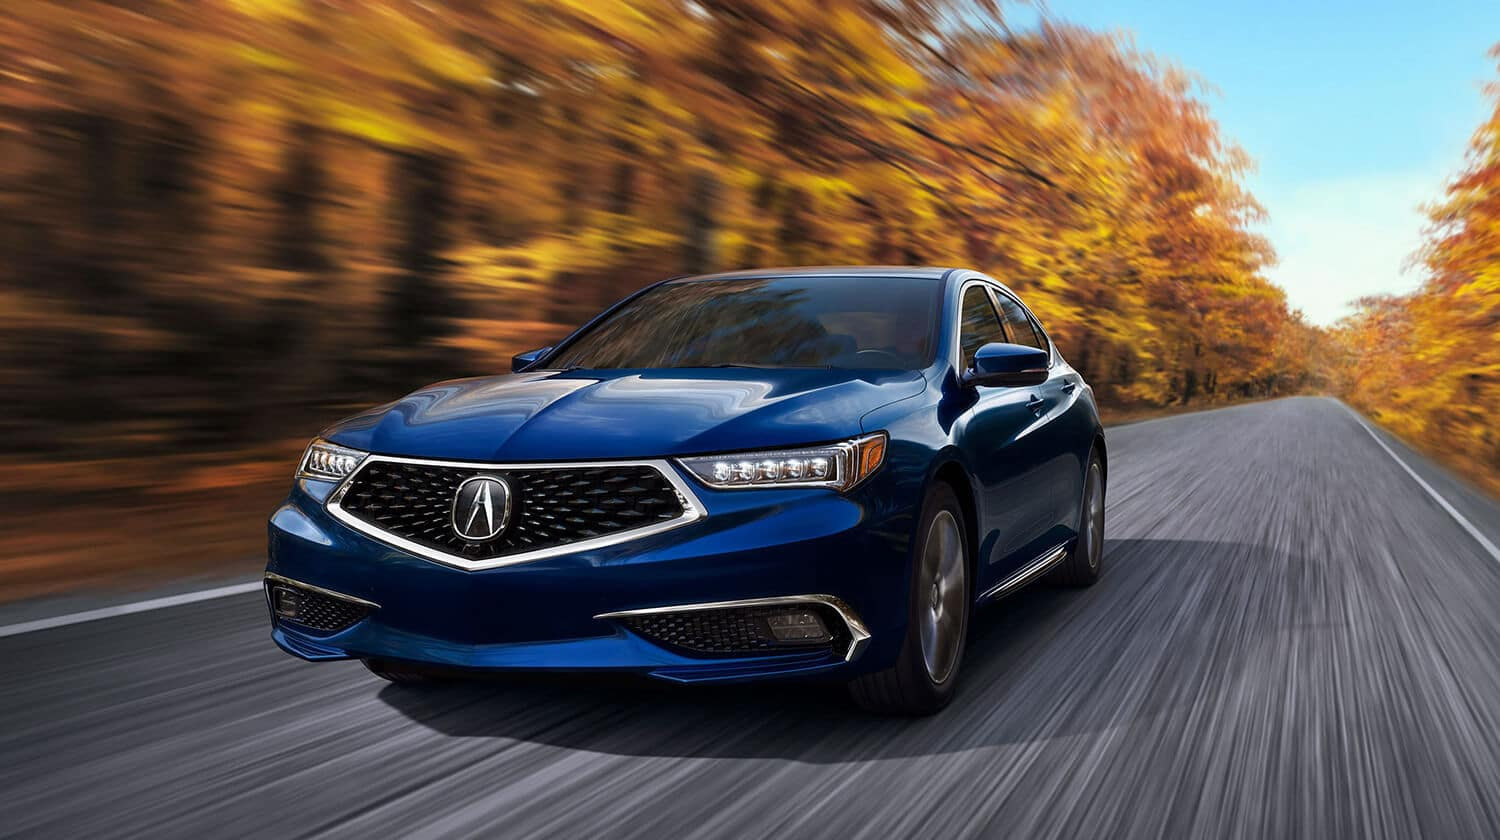 Compare Ilx Vs Tlx Vs Rlx To Find Your Next Luxury Sedan